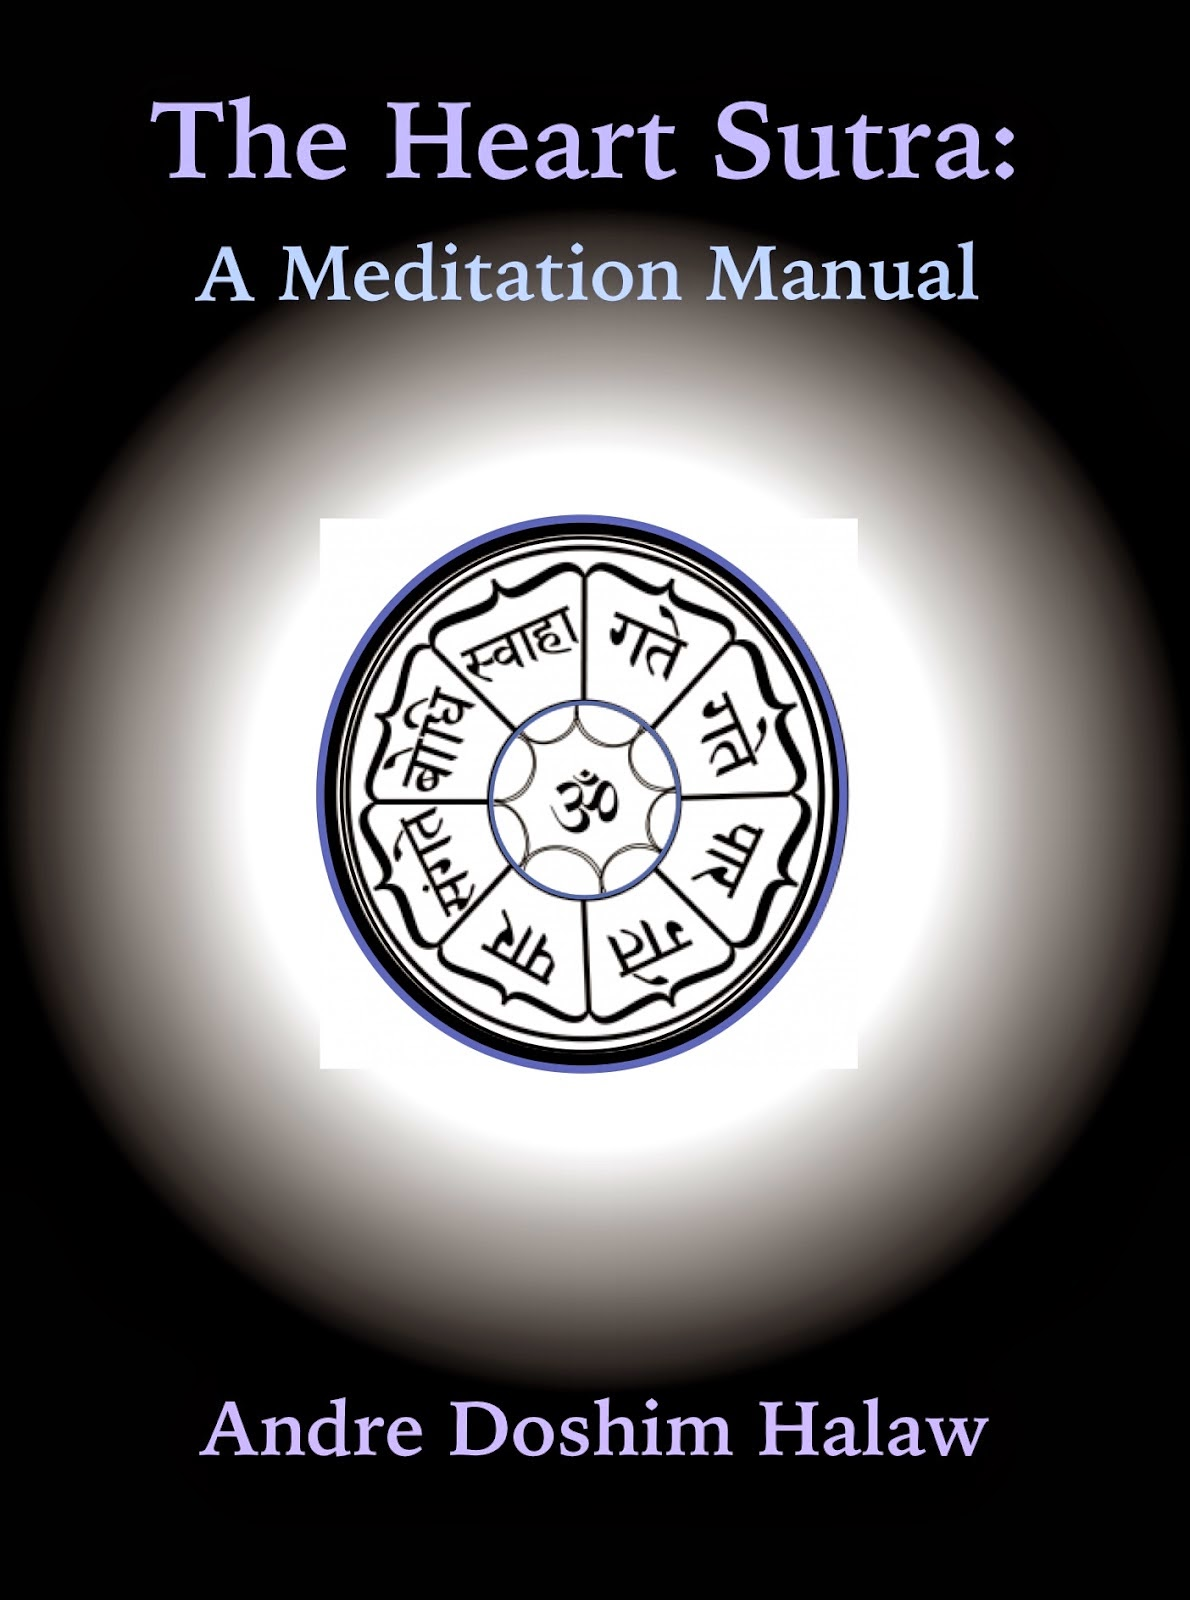 The Heart Sutra: A Meditation Manual